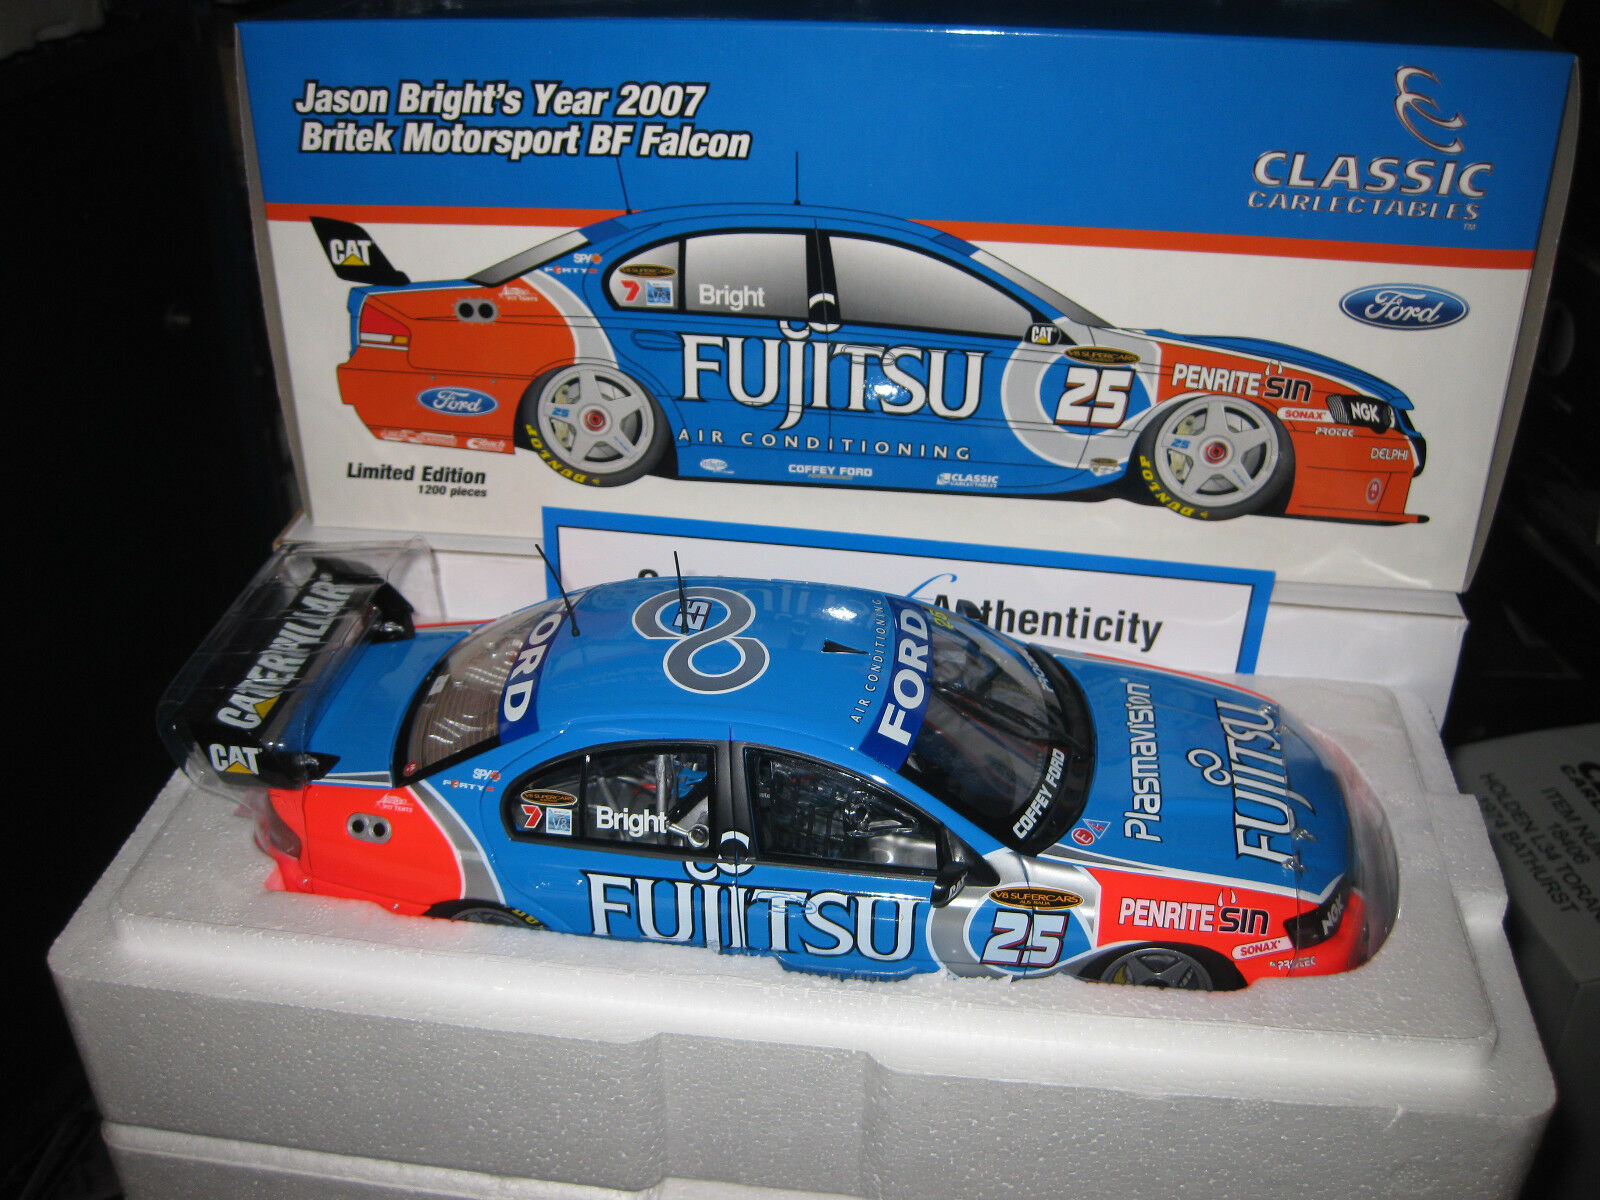 1/18 CLASSIC 2018 FUJITSU RACING  25 JASON BRIGHT BRITEK  FORD BF FALCON 18301